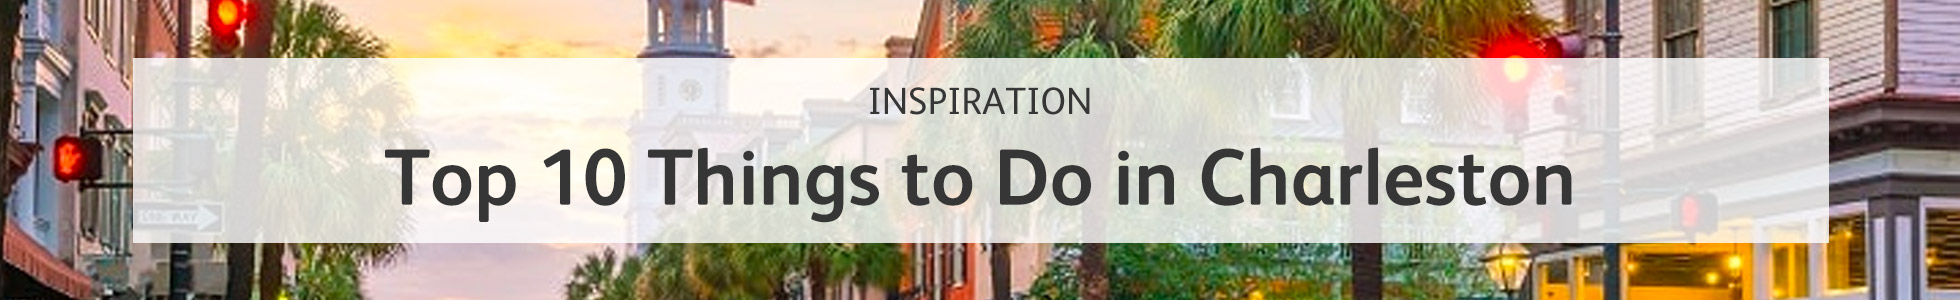 https://www.travelbag.co.uk/blog/2019/march/top-10-things-to-do-in-charleston